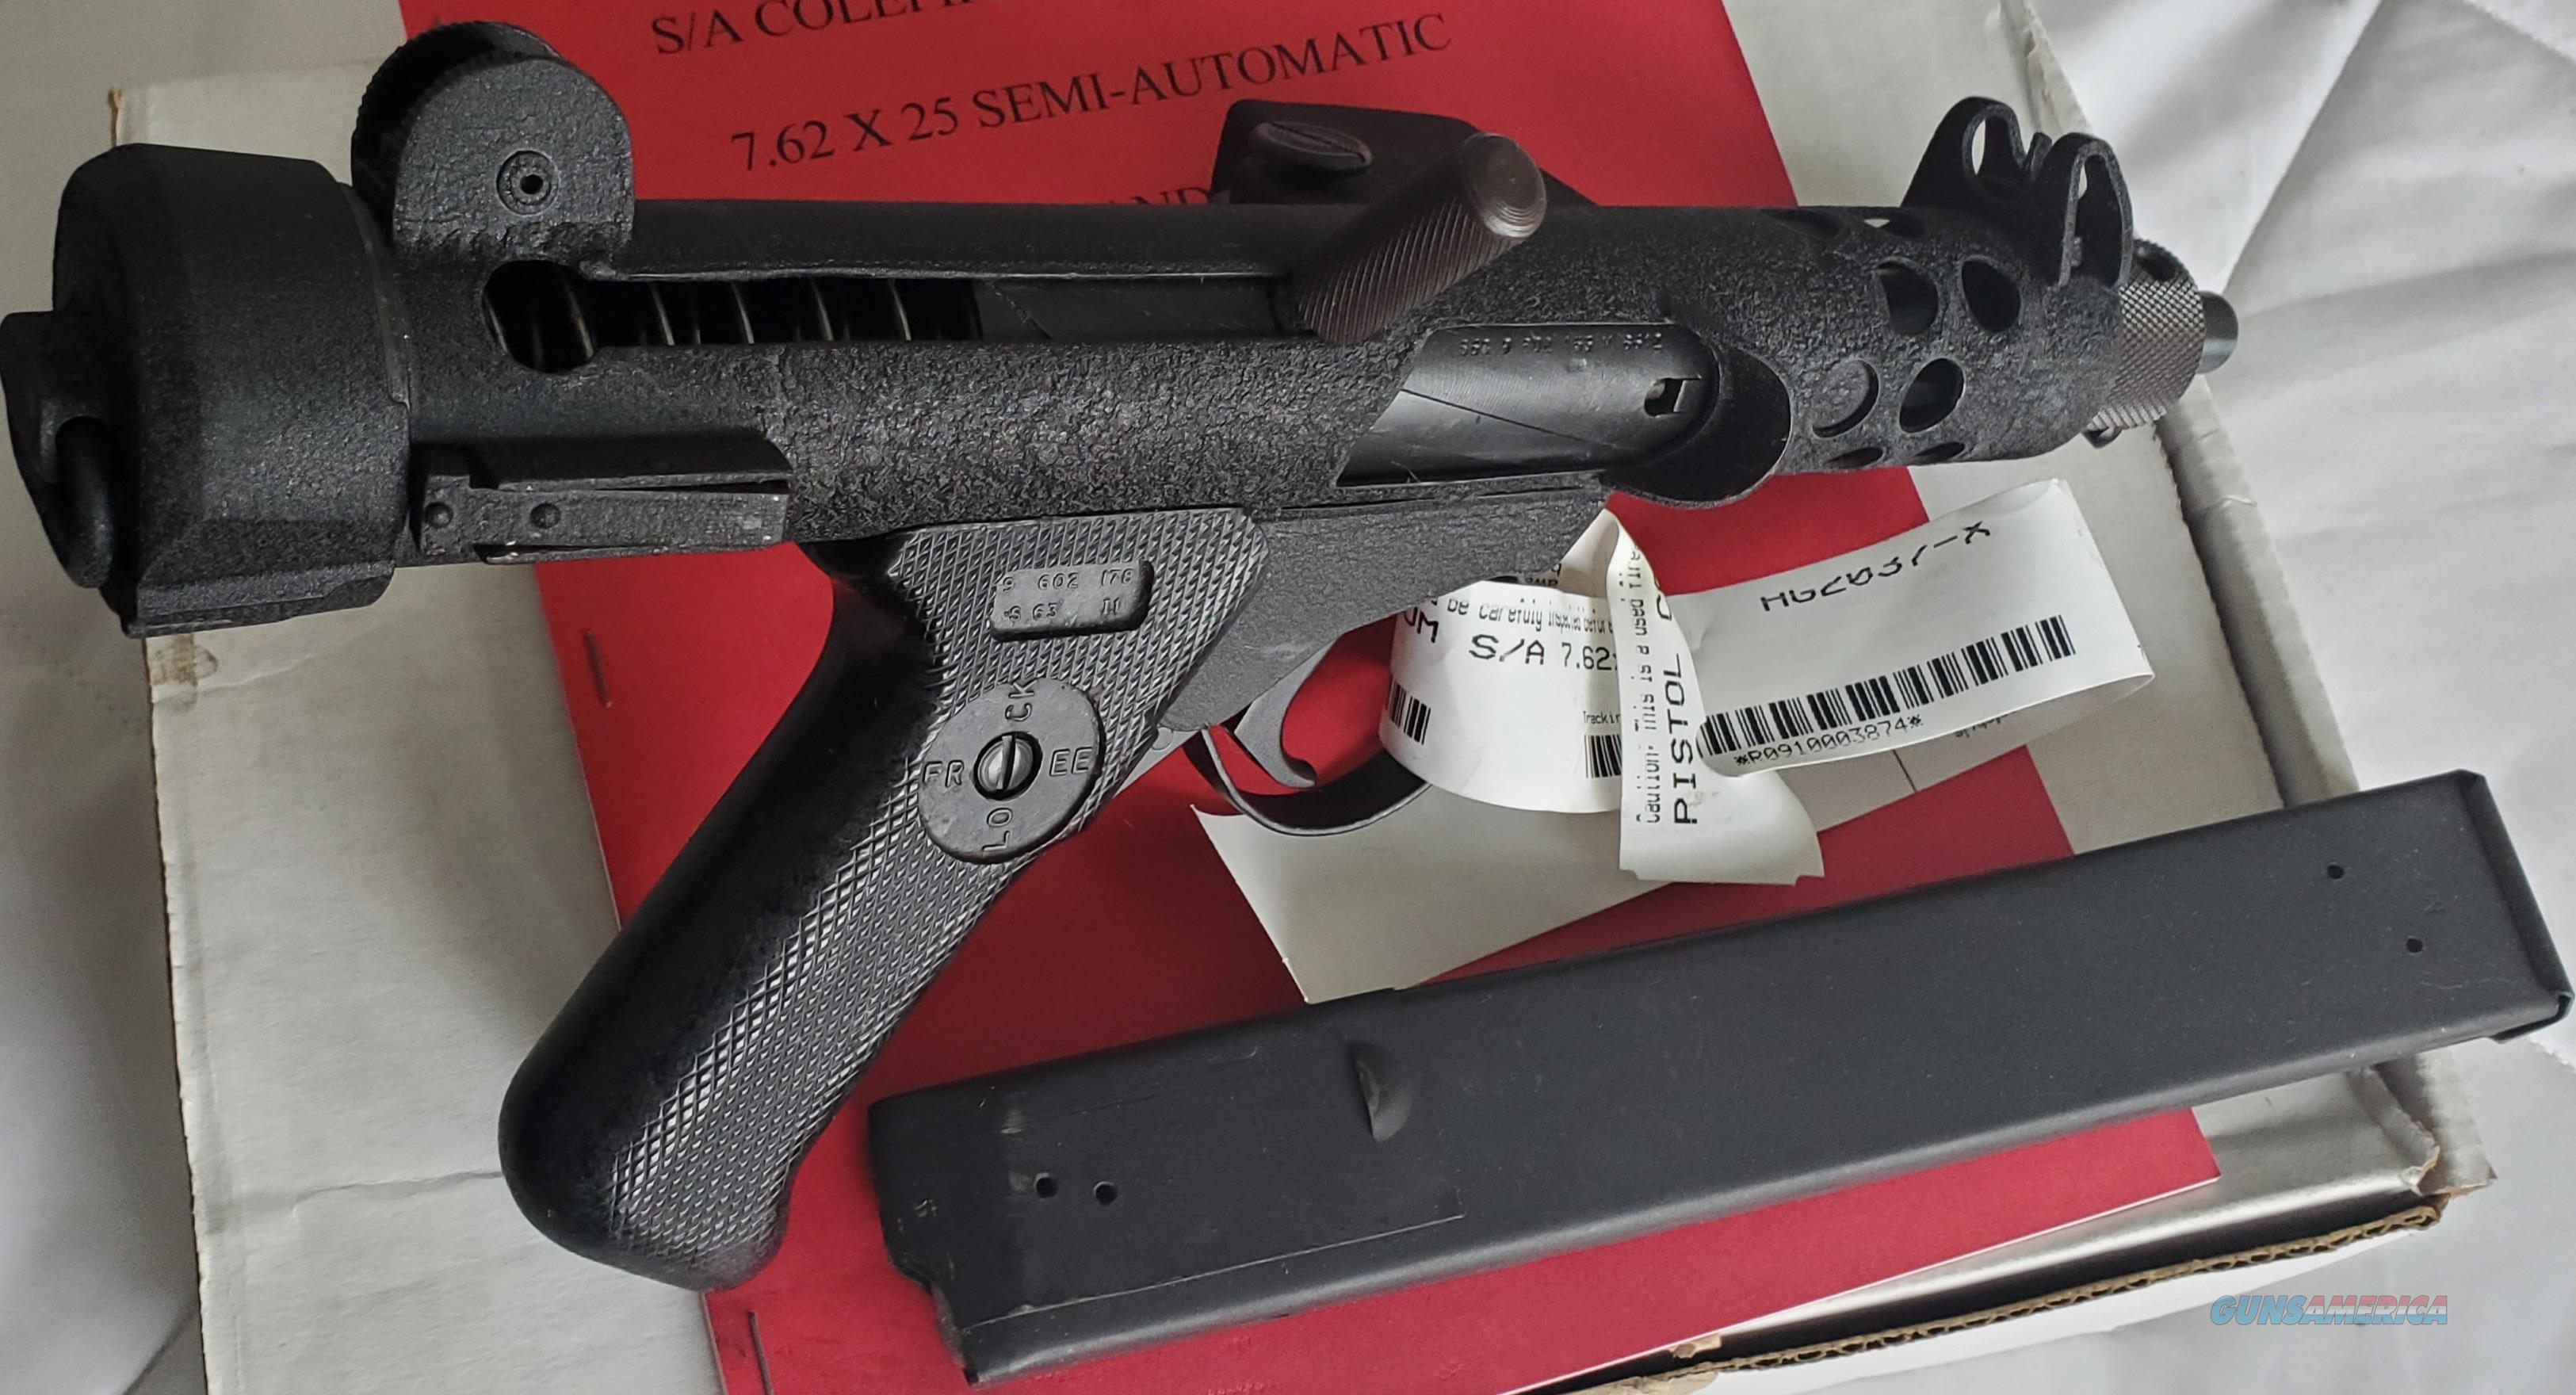 Century Arms Colefire Magnum pistol 7.62x25mm  LAYAWAY OPTION   HG2037-X  Guns > Pistols > Century International Arms - Pistols > Pistols